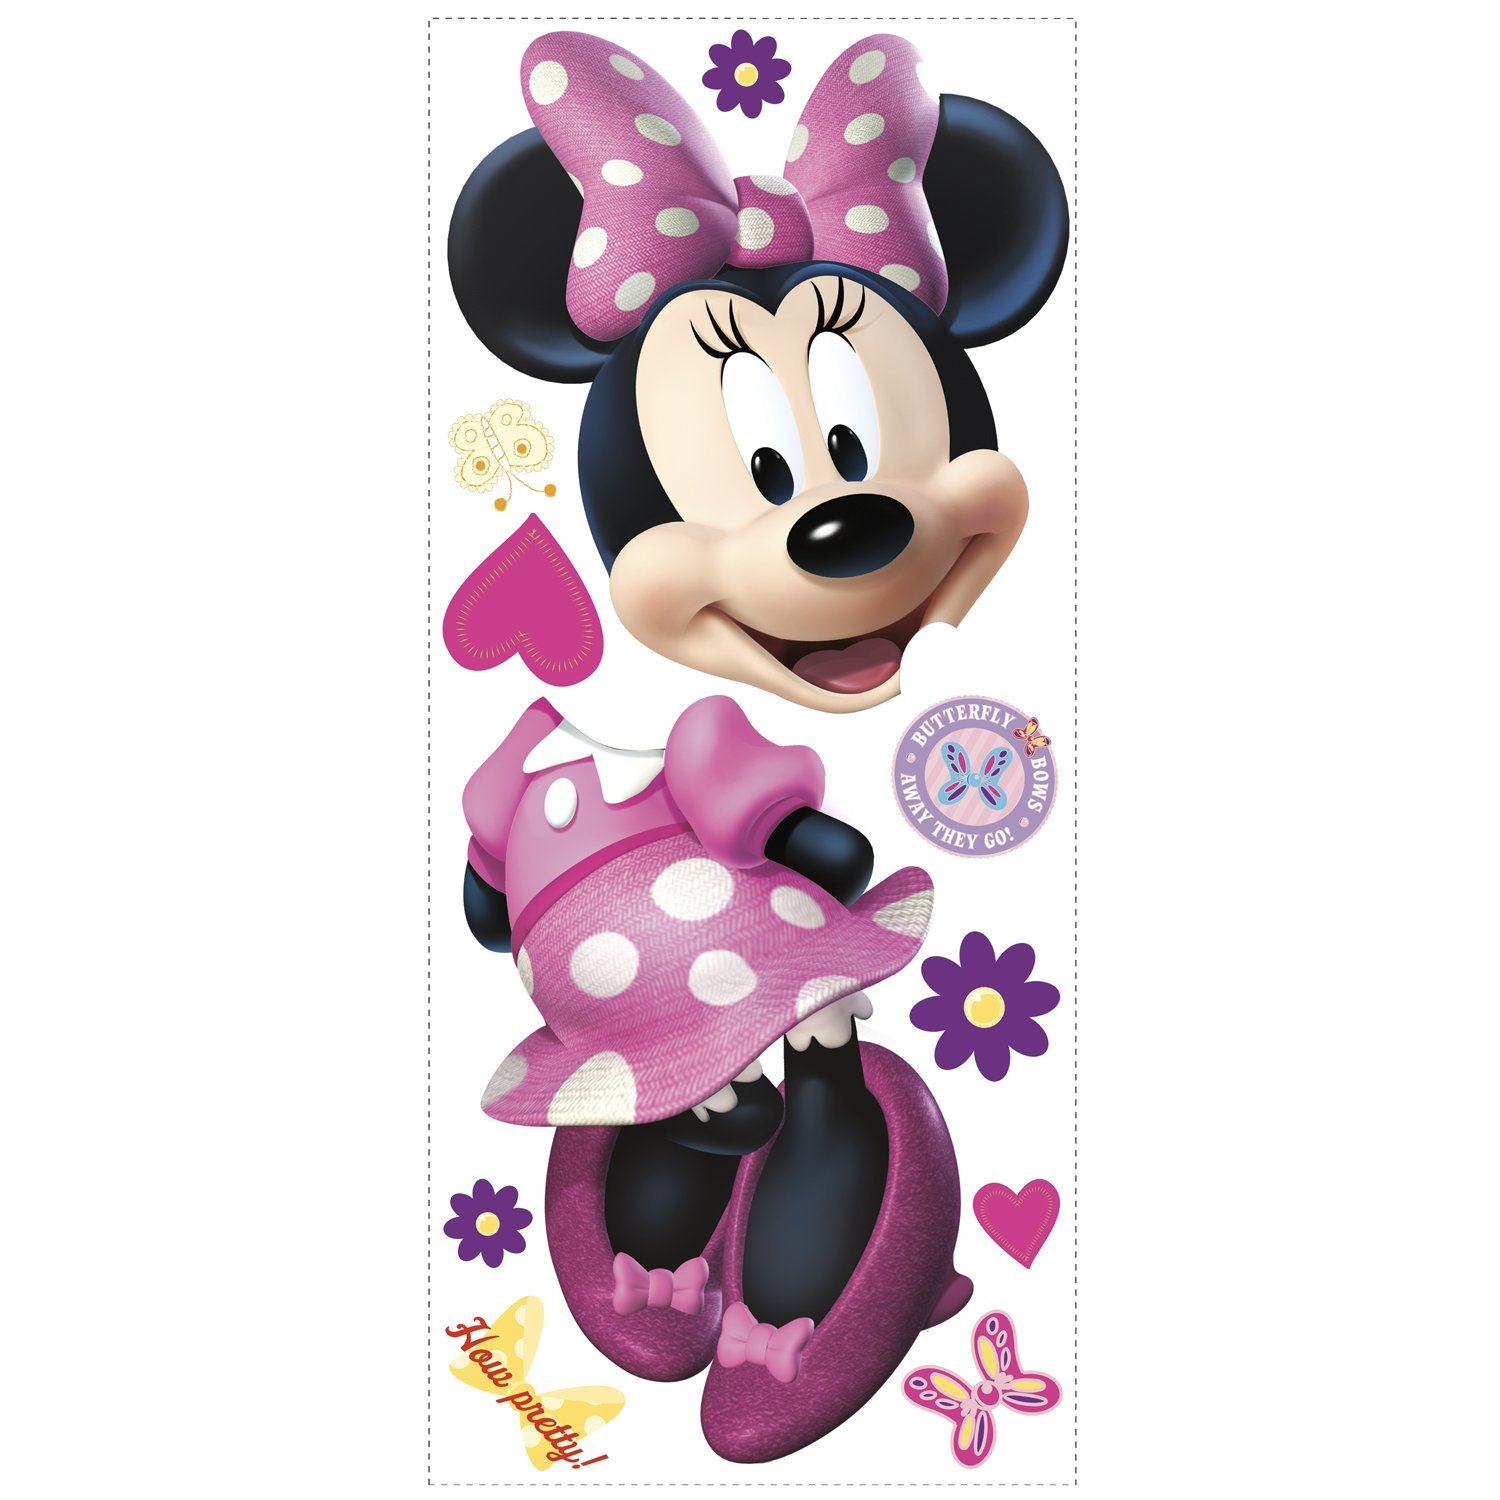 mickey-and-friends-wall-decal-layout.jpg